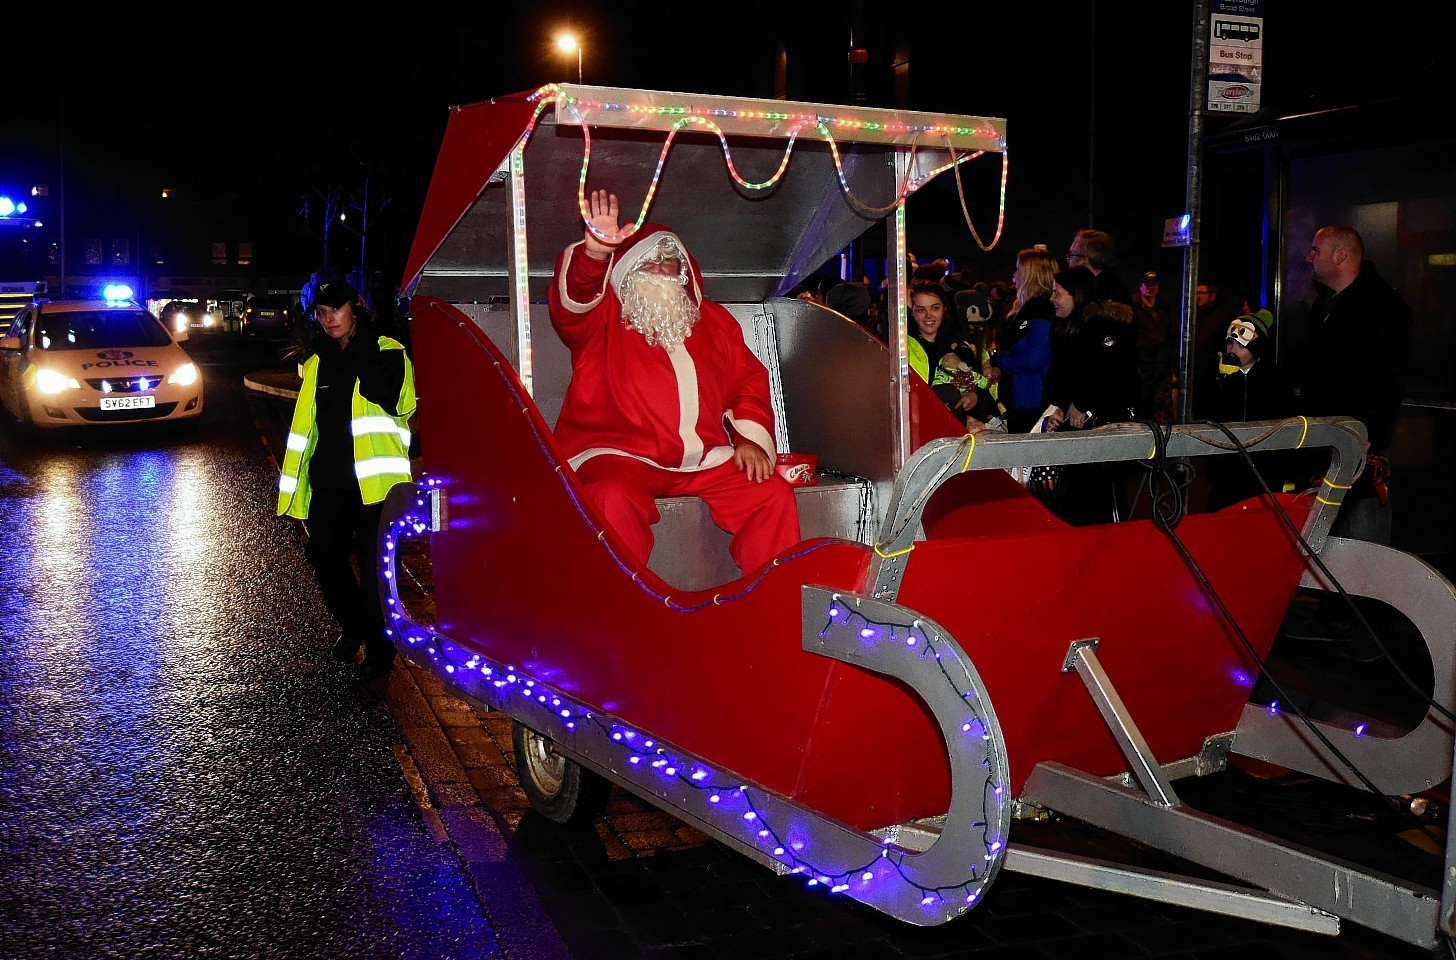 Christmas events in Fraserburgh had previously been organised by business leaders.